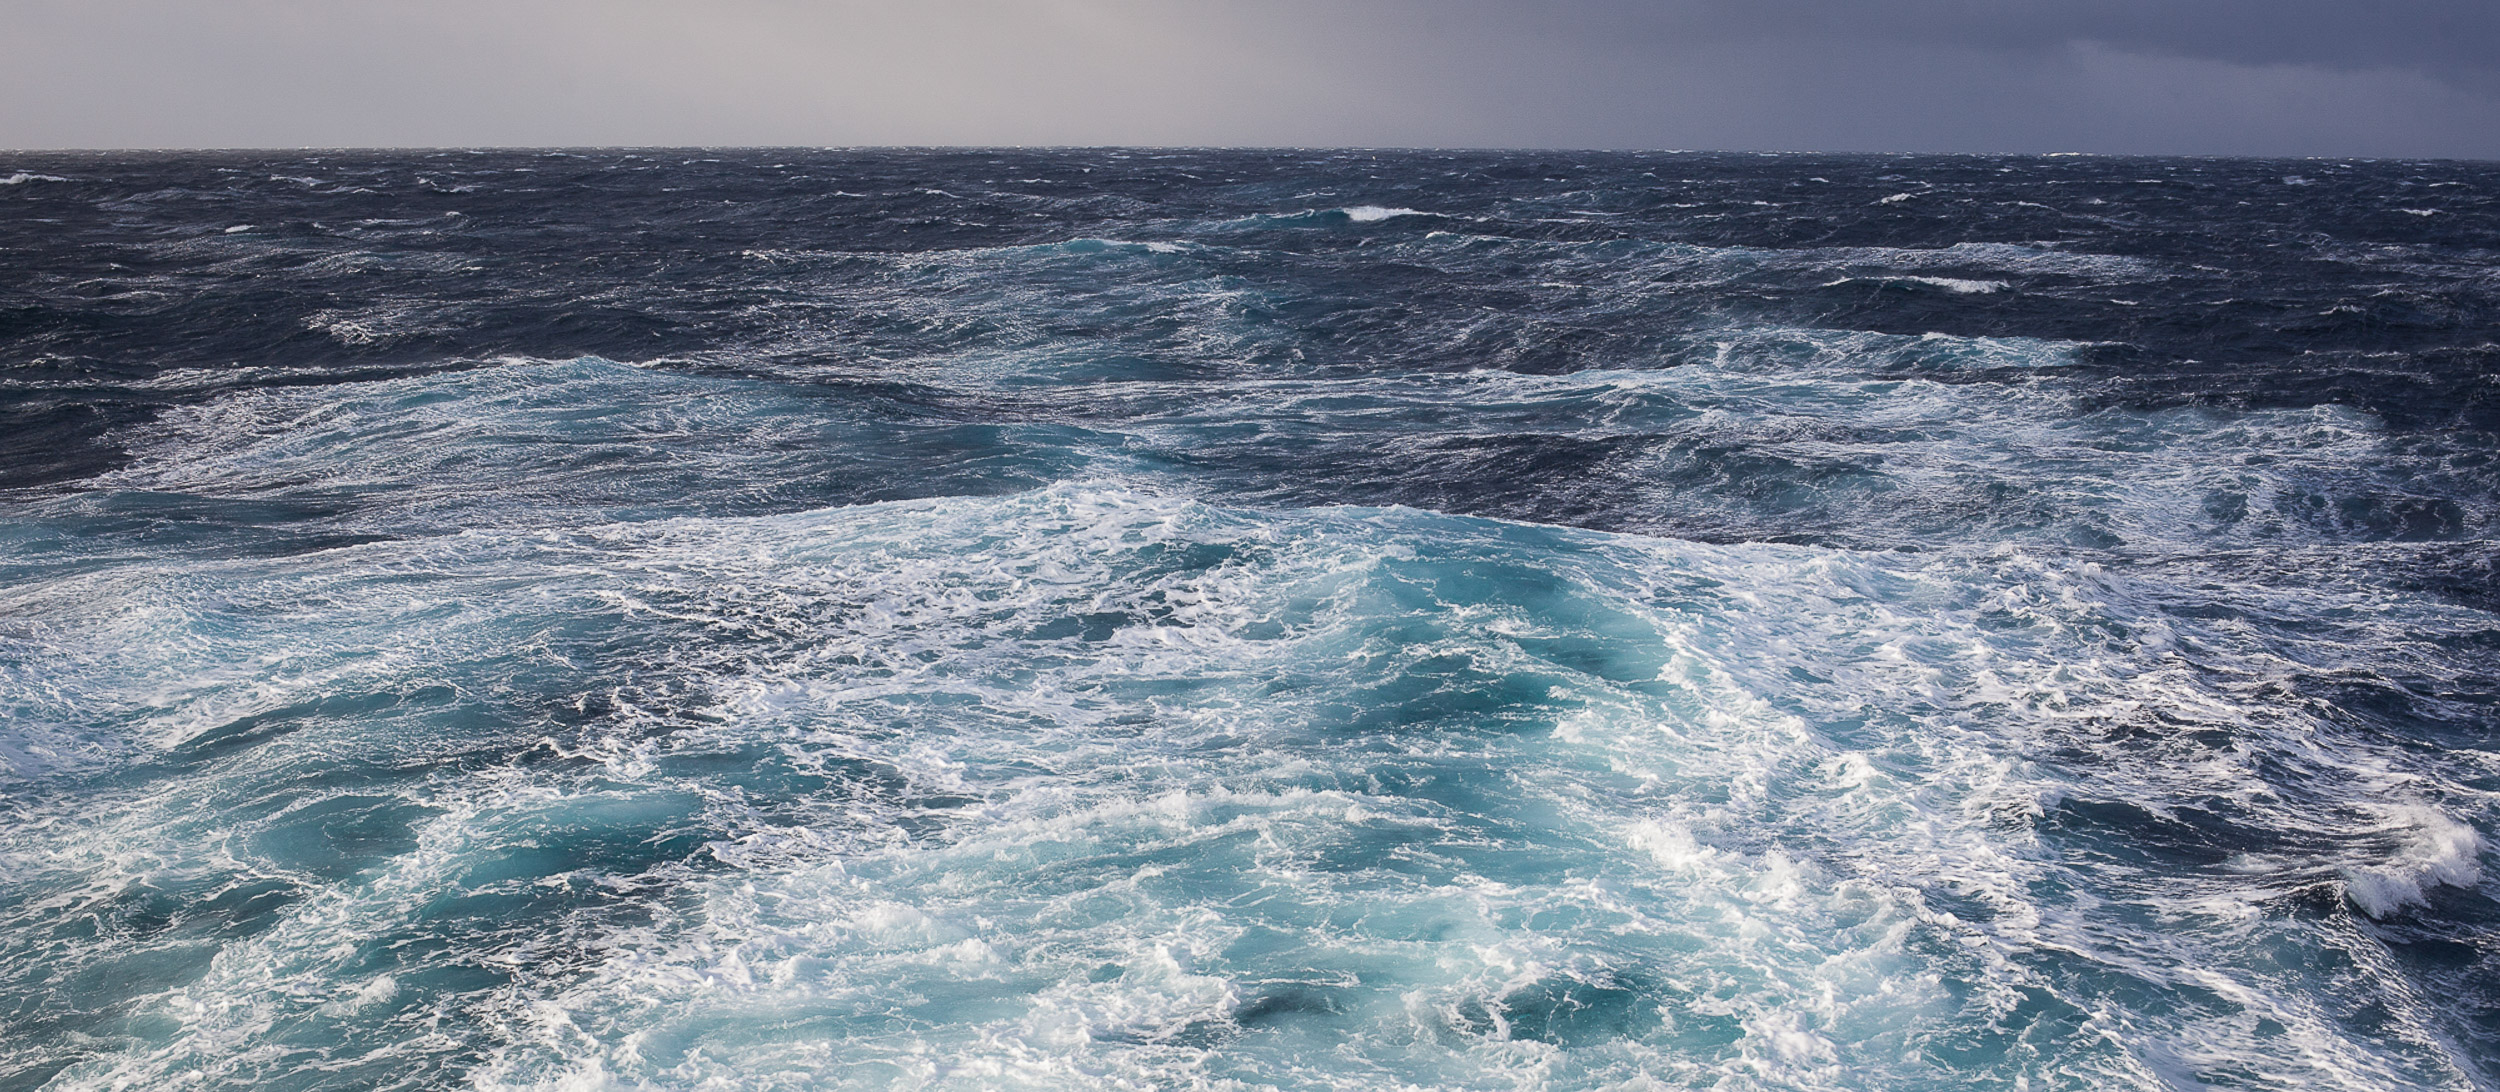 Oceans cover more than 70 percent of the surface of our planet - so there is much at stake. The North Atlantic Ocean.  JONAA©Jonathan Laurence